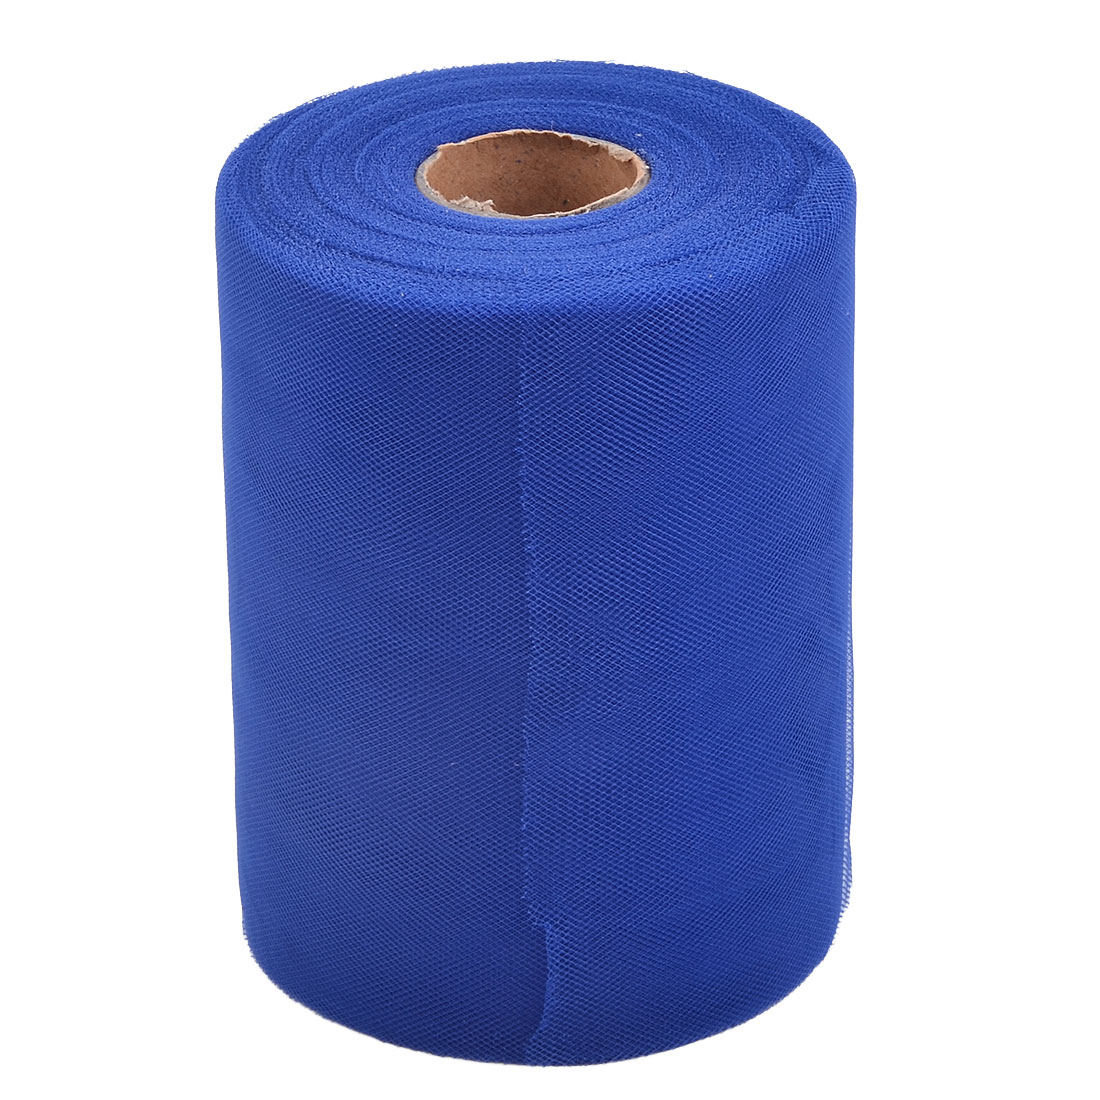 Home Polyester Tutu Gift Packing Ornament Tulle Spool Roll Royal Blue 6 Inch x 100 Yards